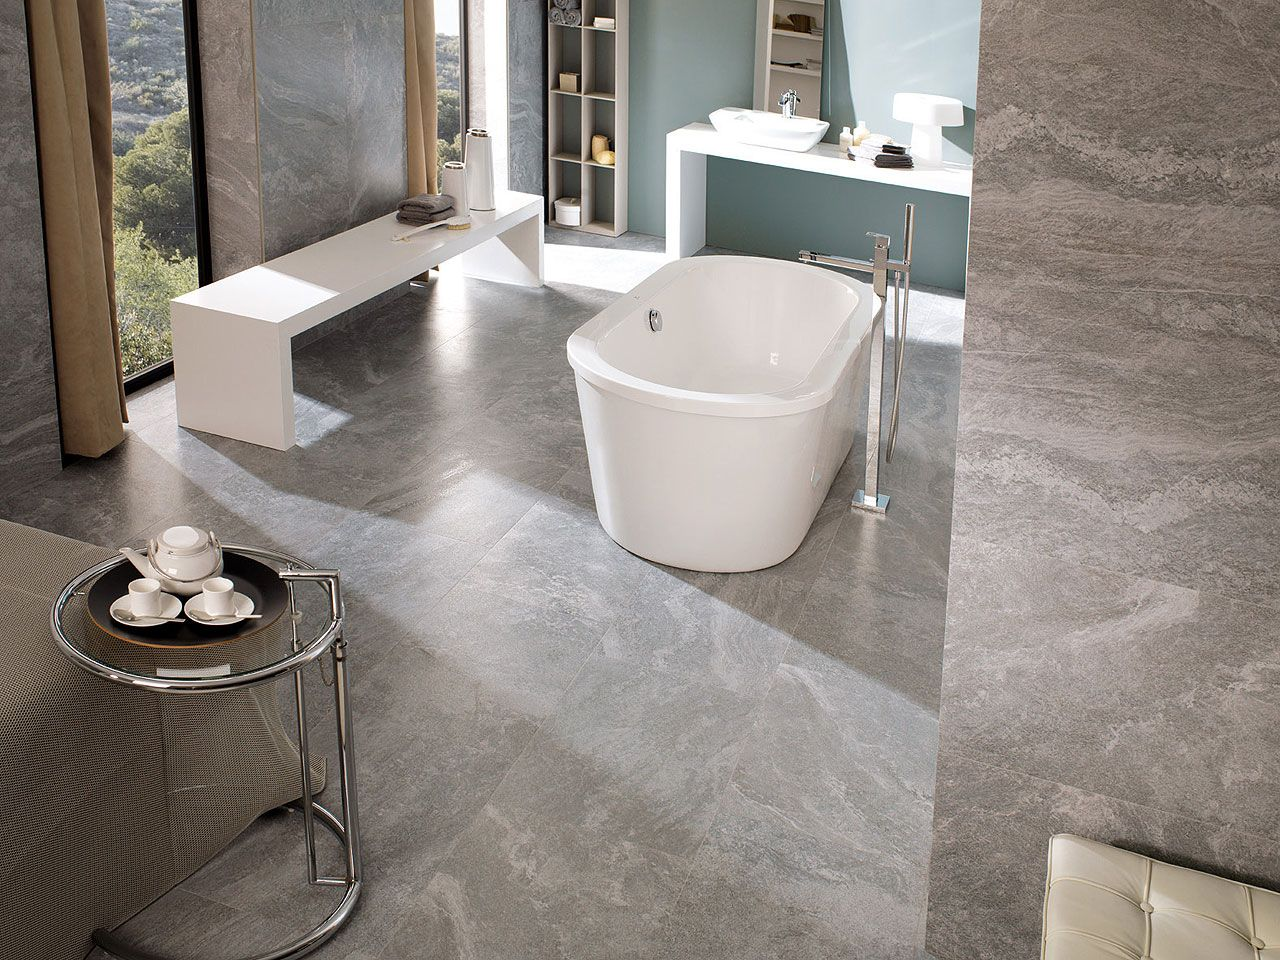 Stylish bathroom with porcelanosa 39 s tiles floor tiles for Porcelanosa bathroom ideas